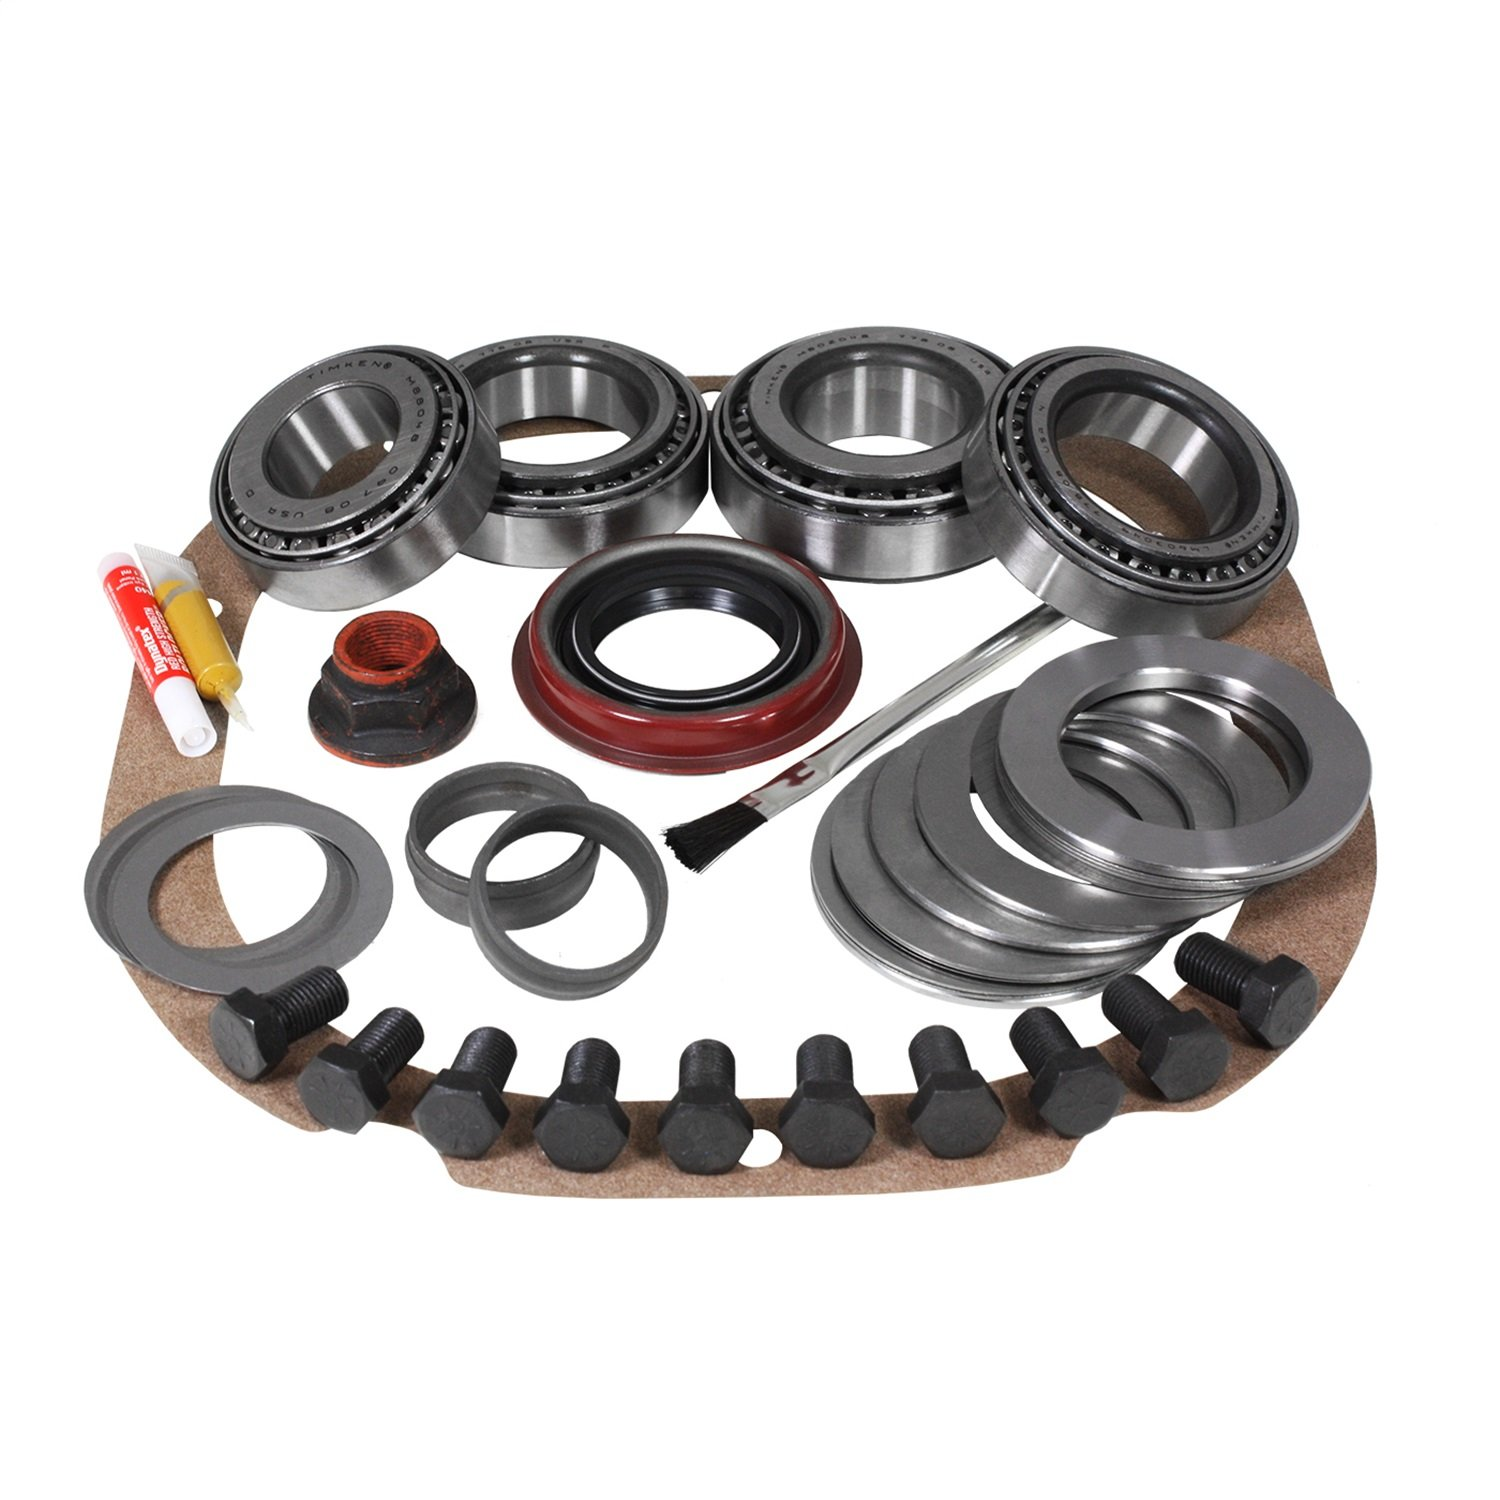 USA Standard Gear ZK F7.5 Master Overhaul Kit